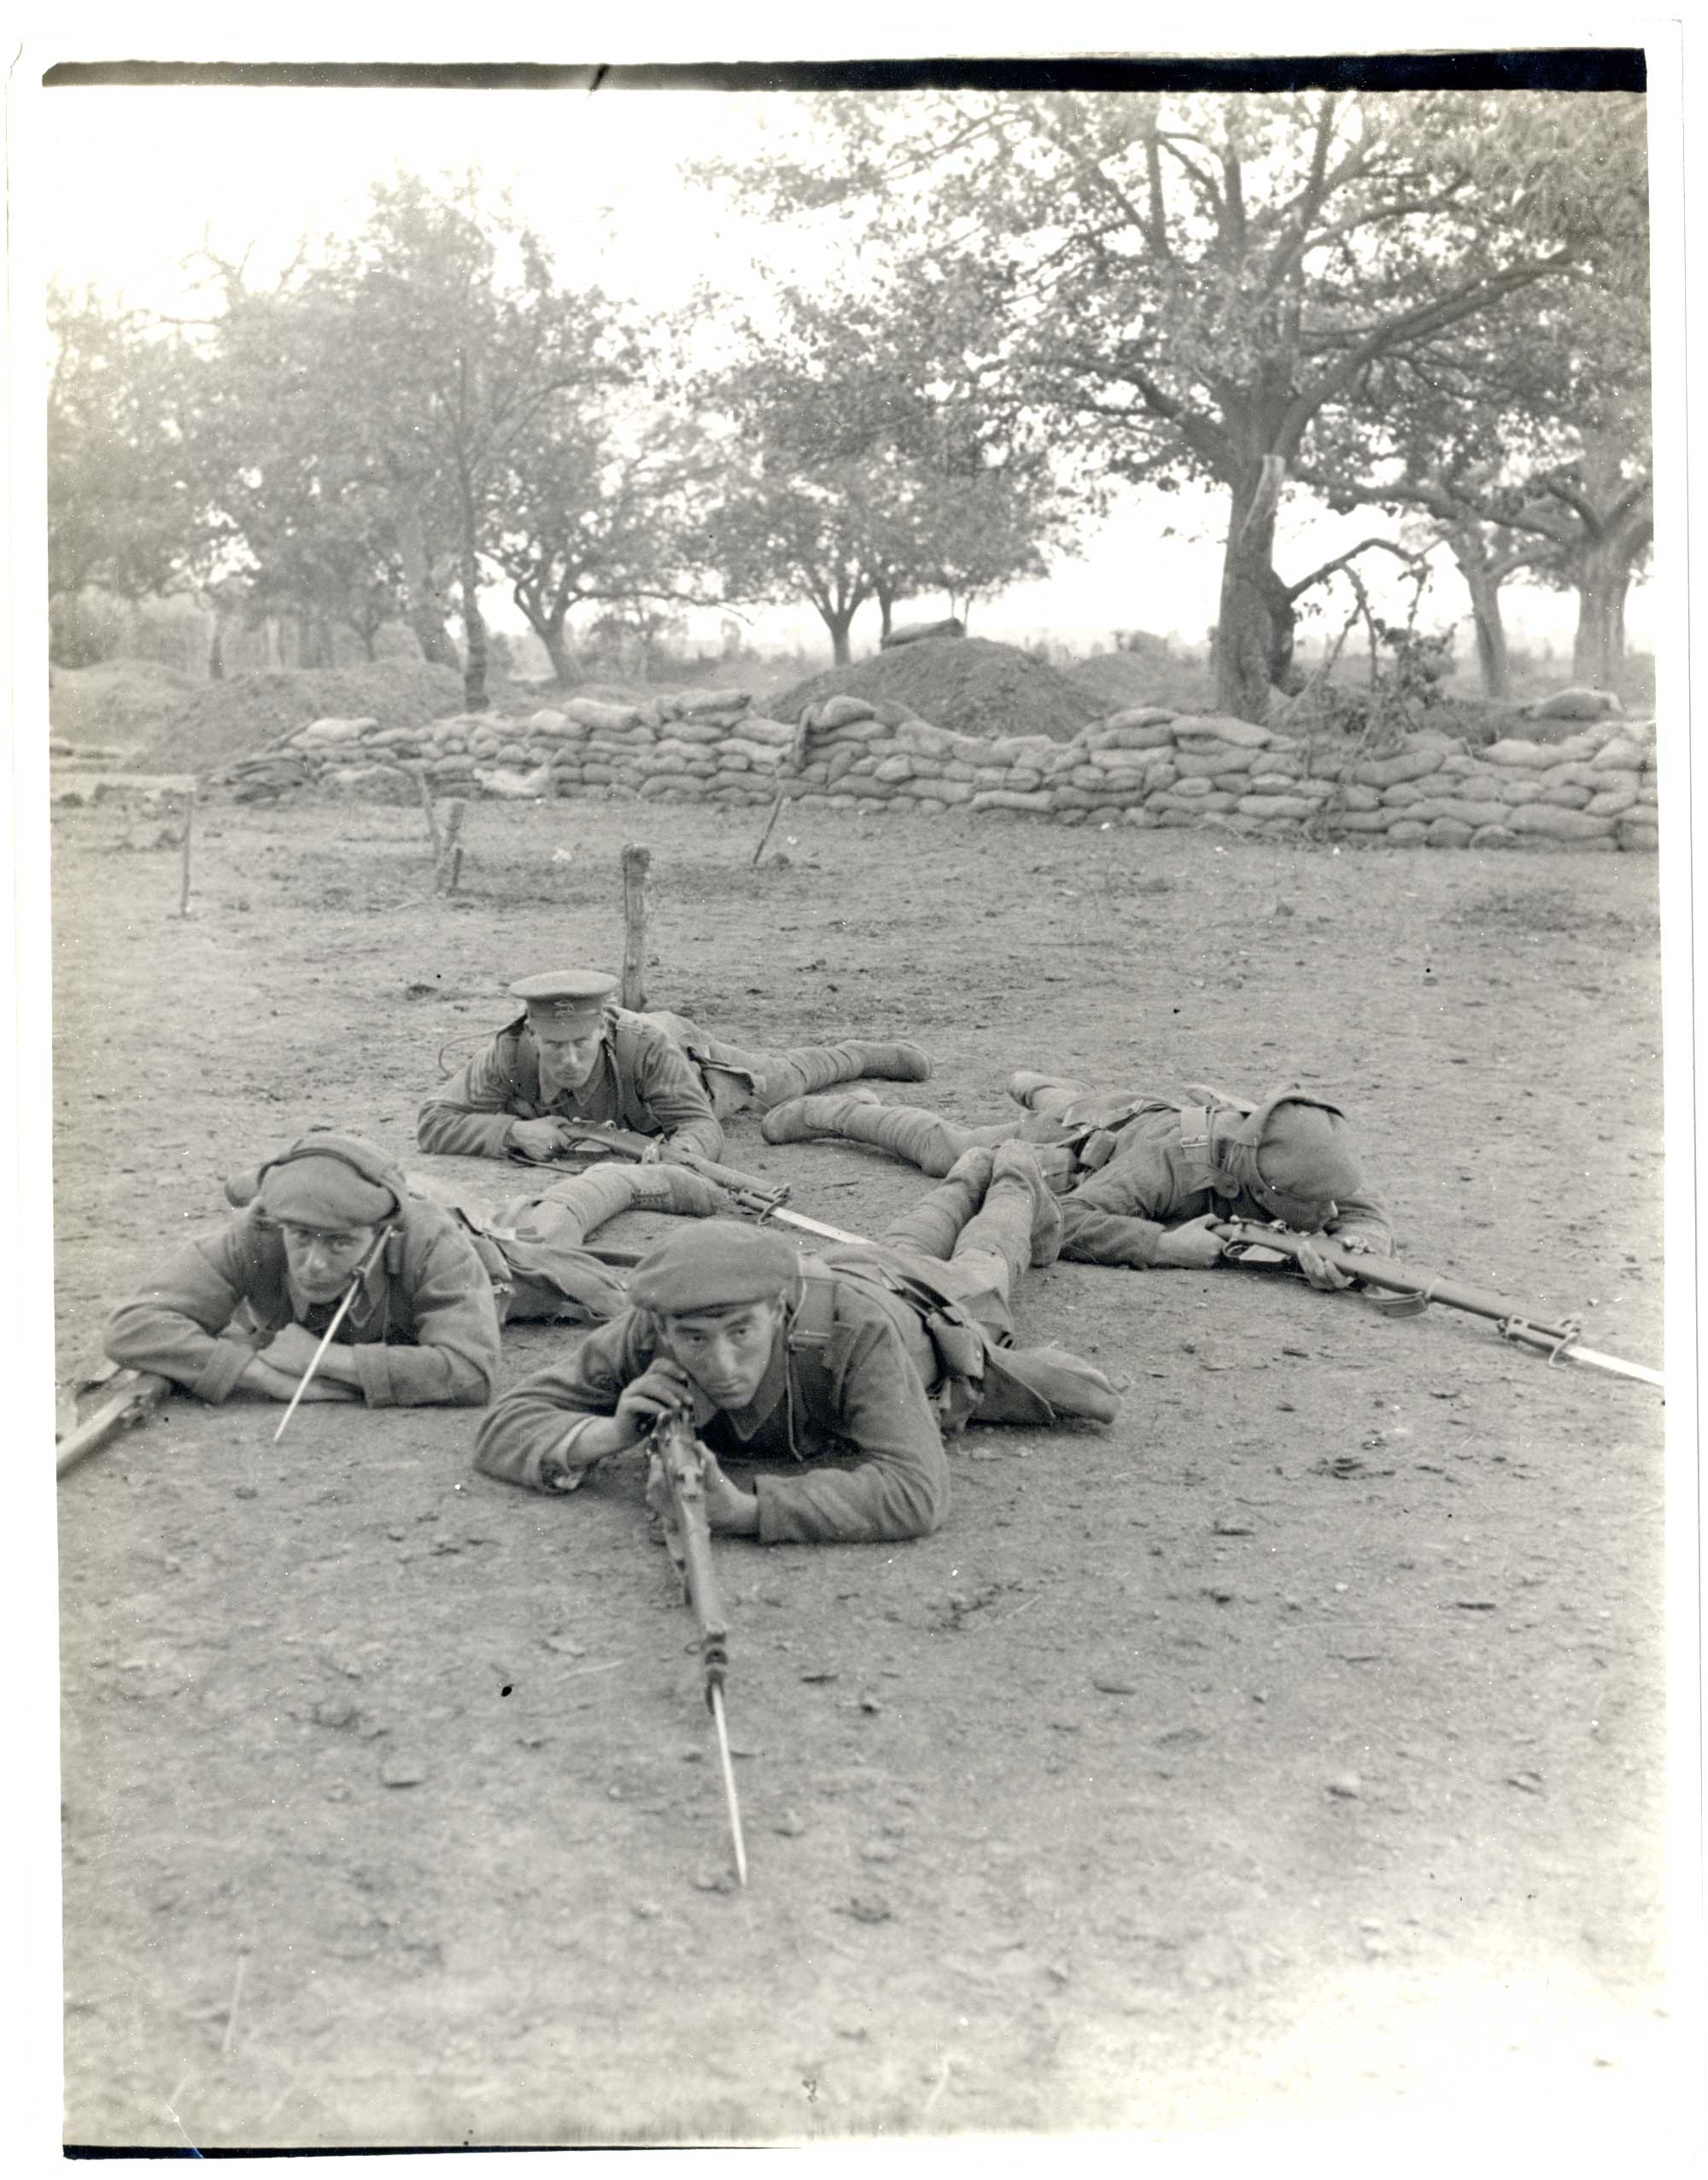 A photograph of soldiers operating as a 'listening post', dating from 1914-15. It is likely this is a training exercise.